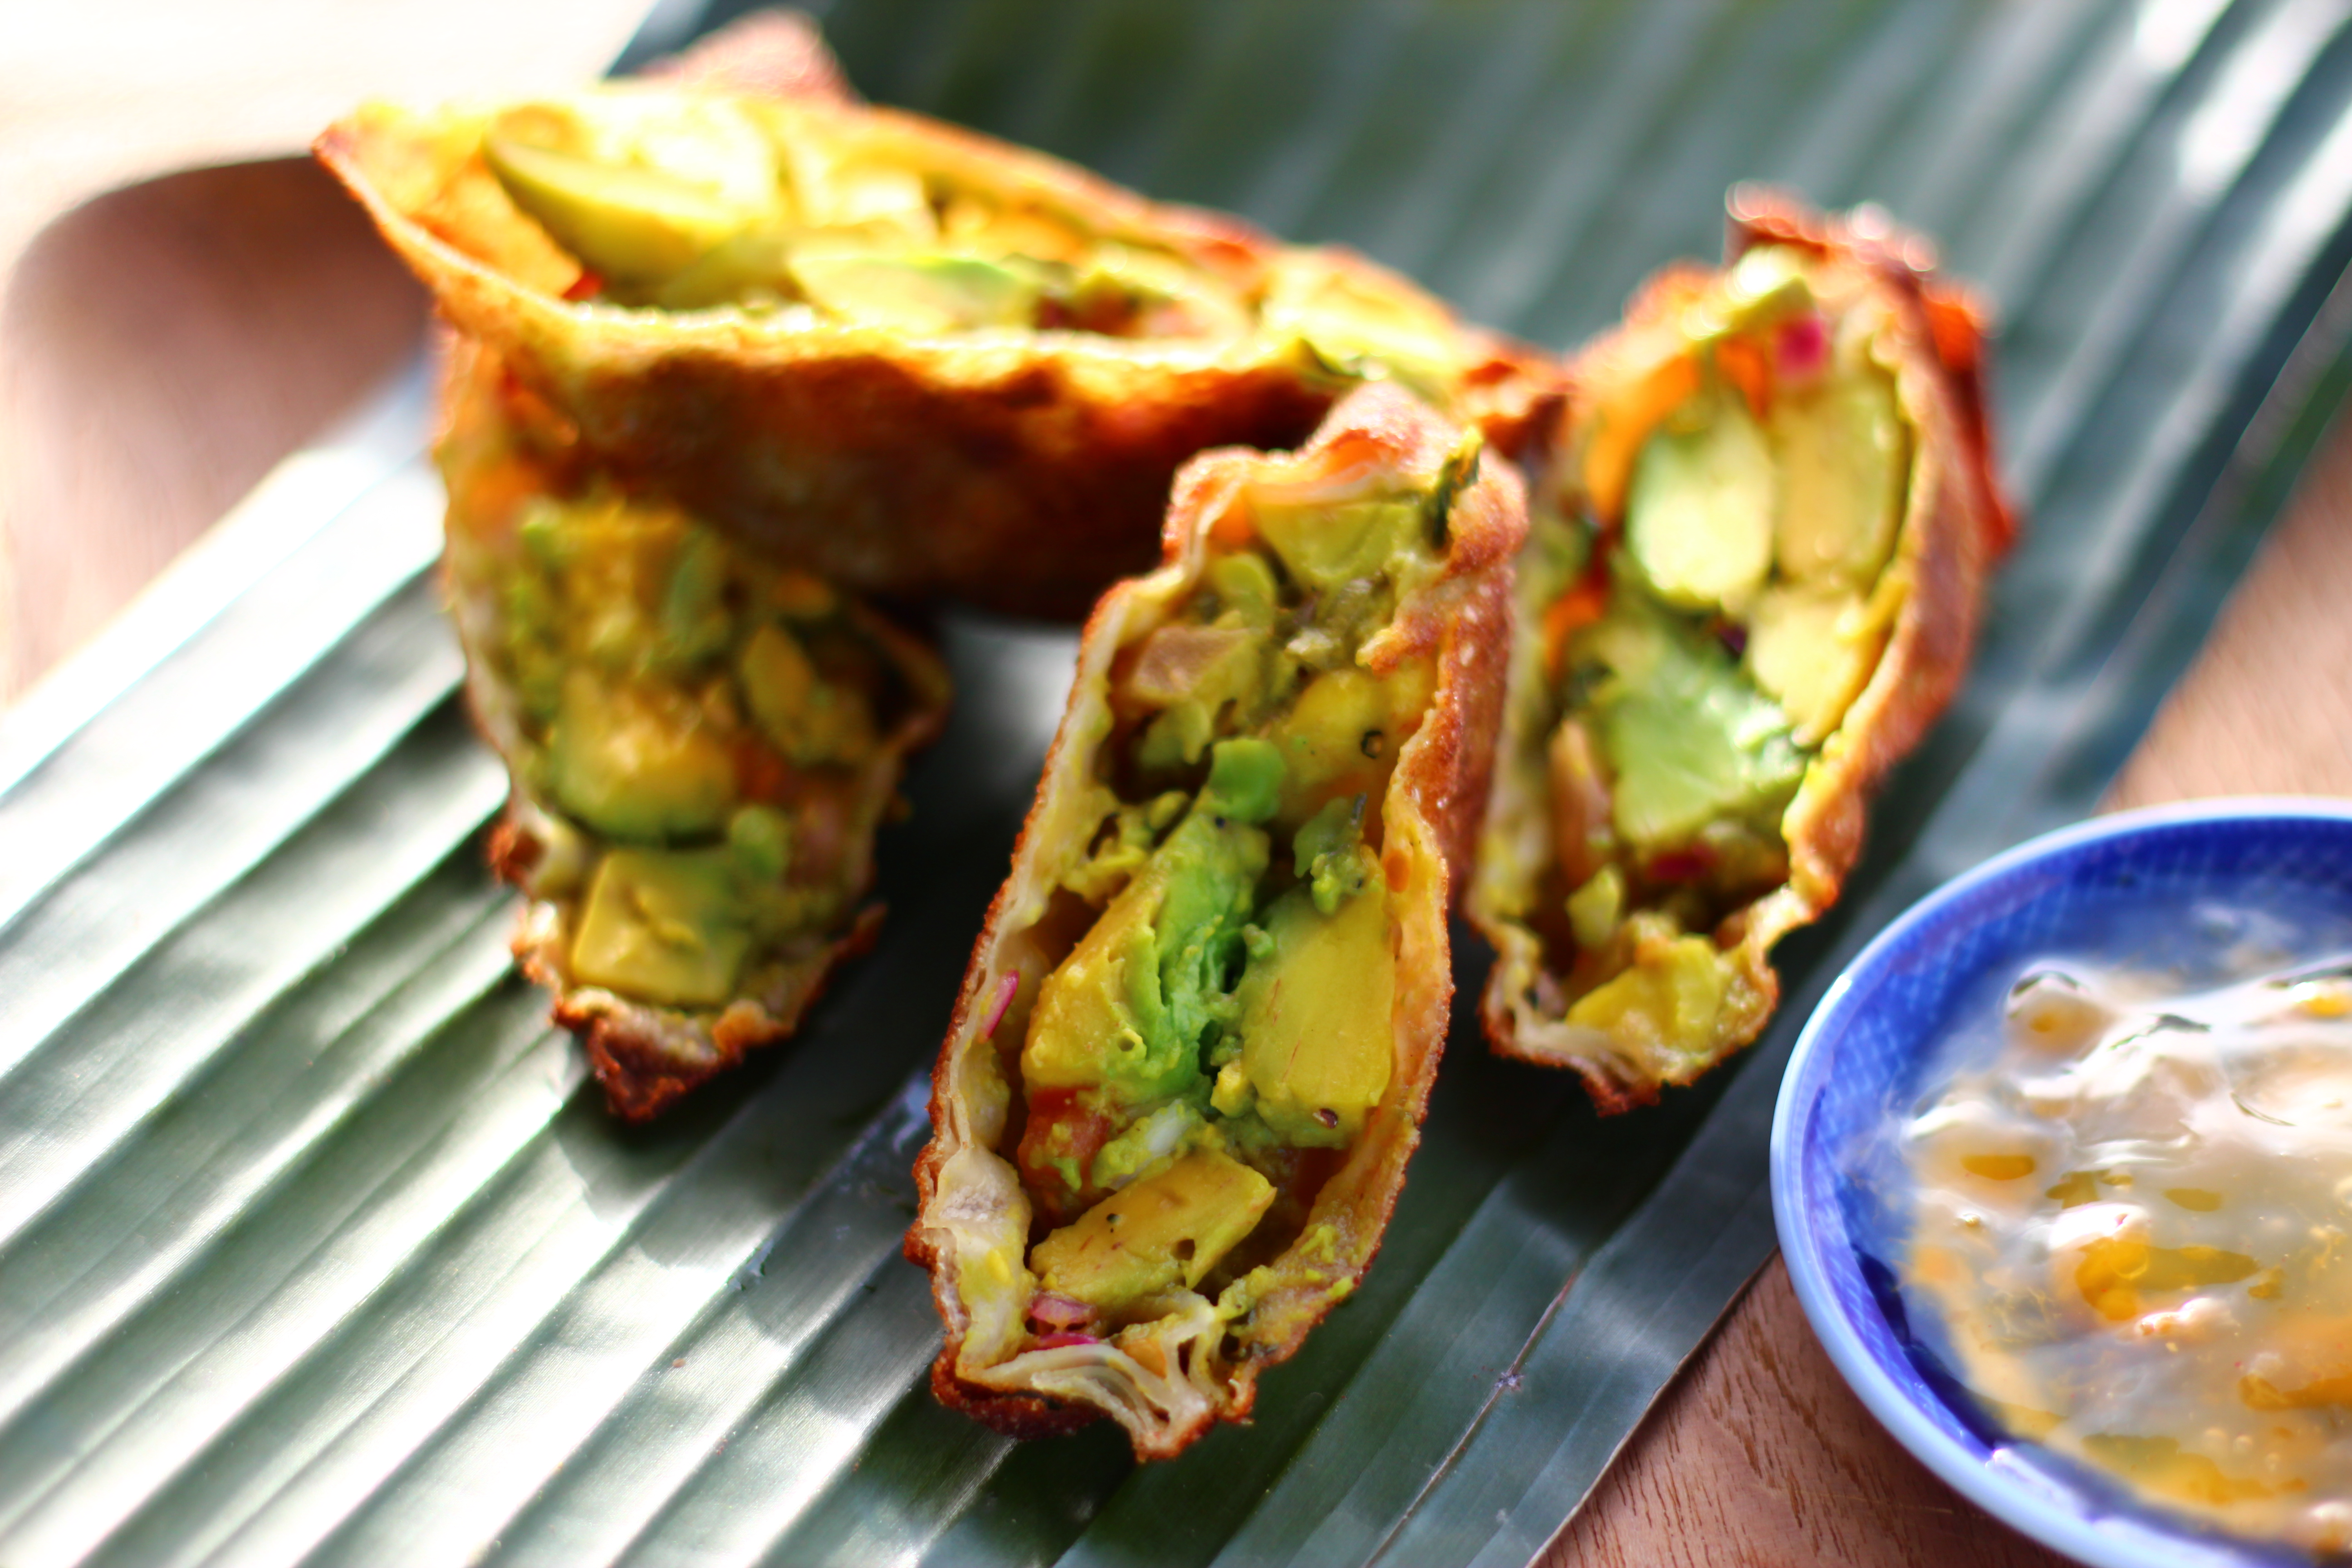 Contessa Avocado Egg Rolls – The Crucian Contessa